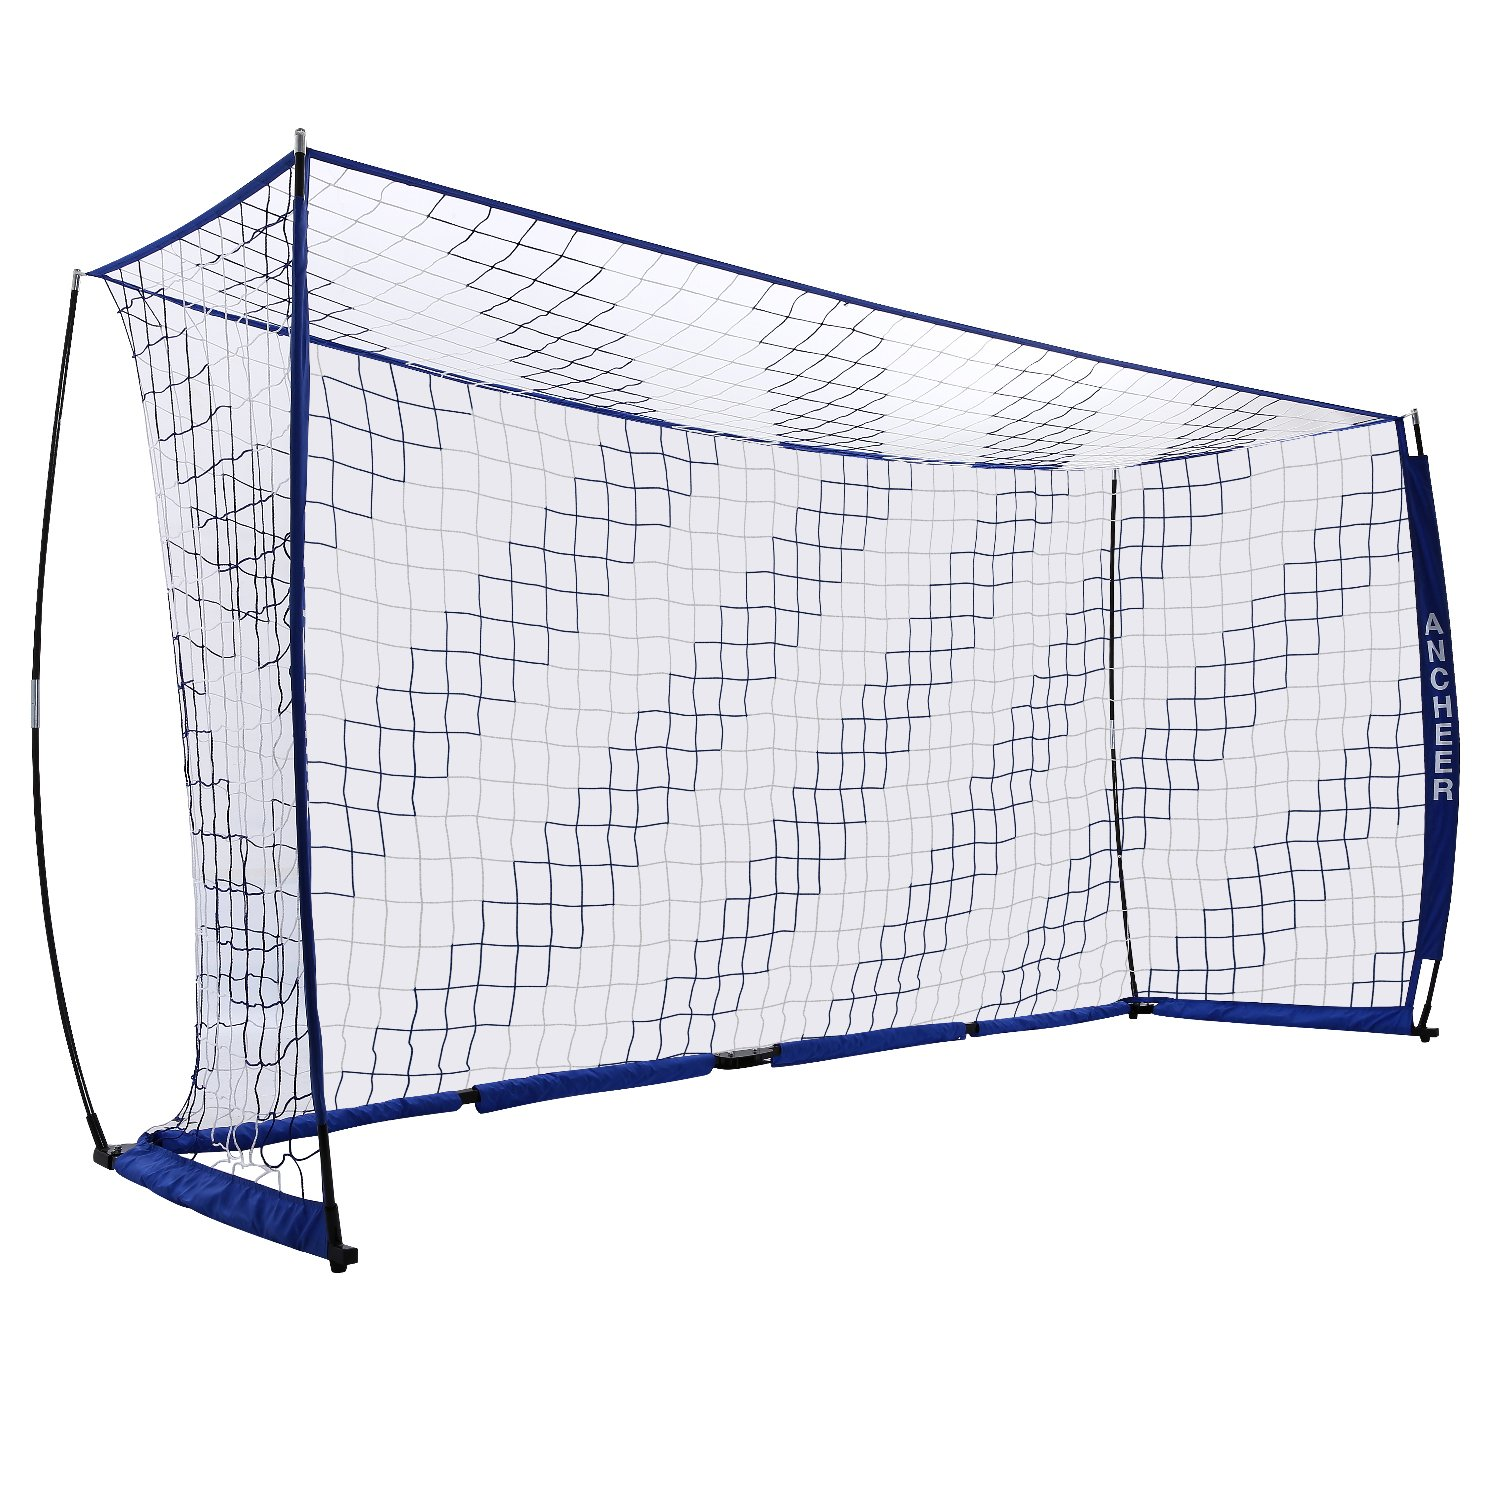 AncheerポータブルサッカーゴールFolding Soccer Goal Net in 3 Sizes B07BMRCDLC 12 x 6 FT Blue 12 x 6 FT Blue